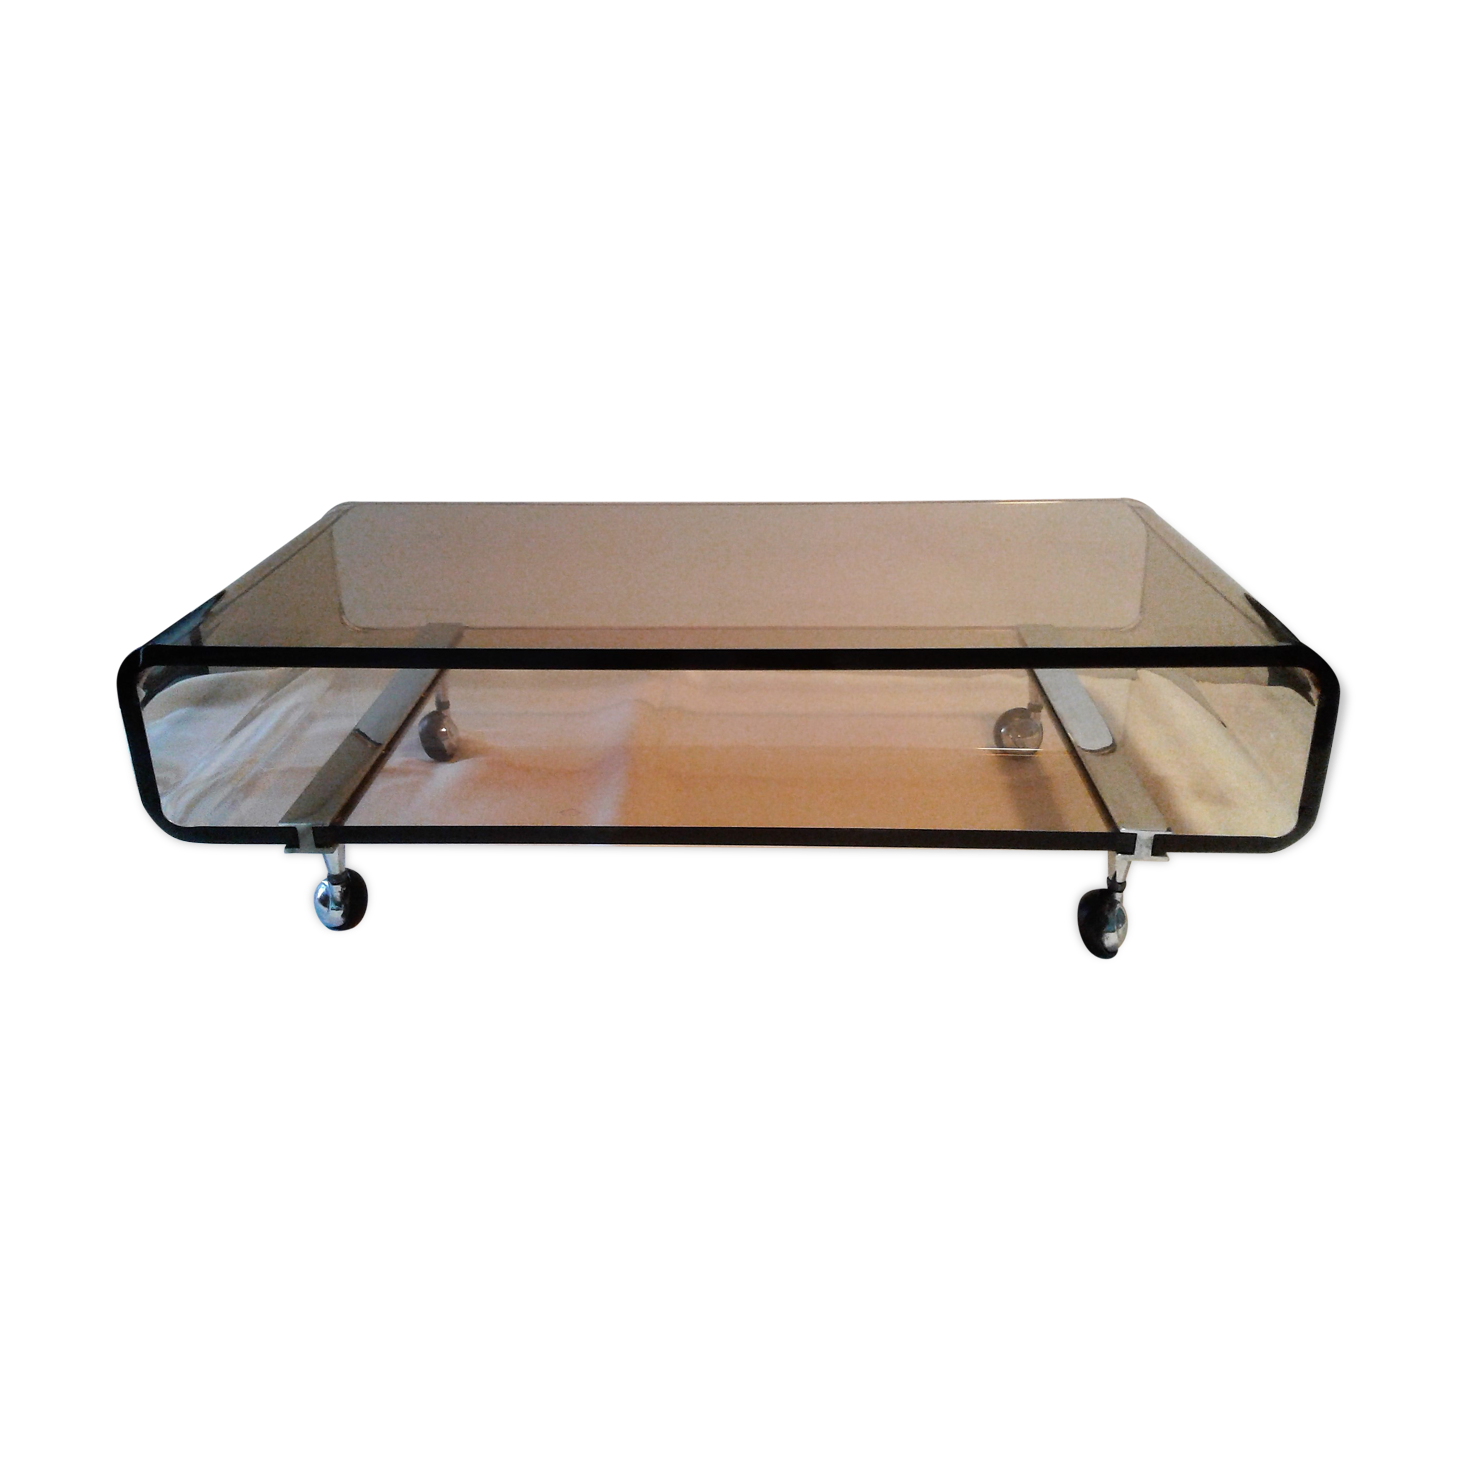 table basse en altuglas fum us with table basse plexiglas transparent. Black Bedroom Furniture Sets. Home Design Ideas